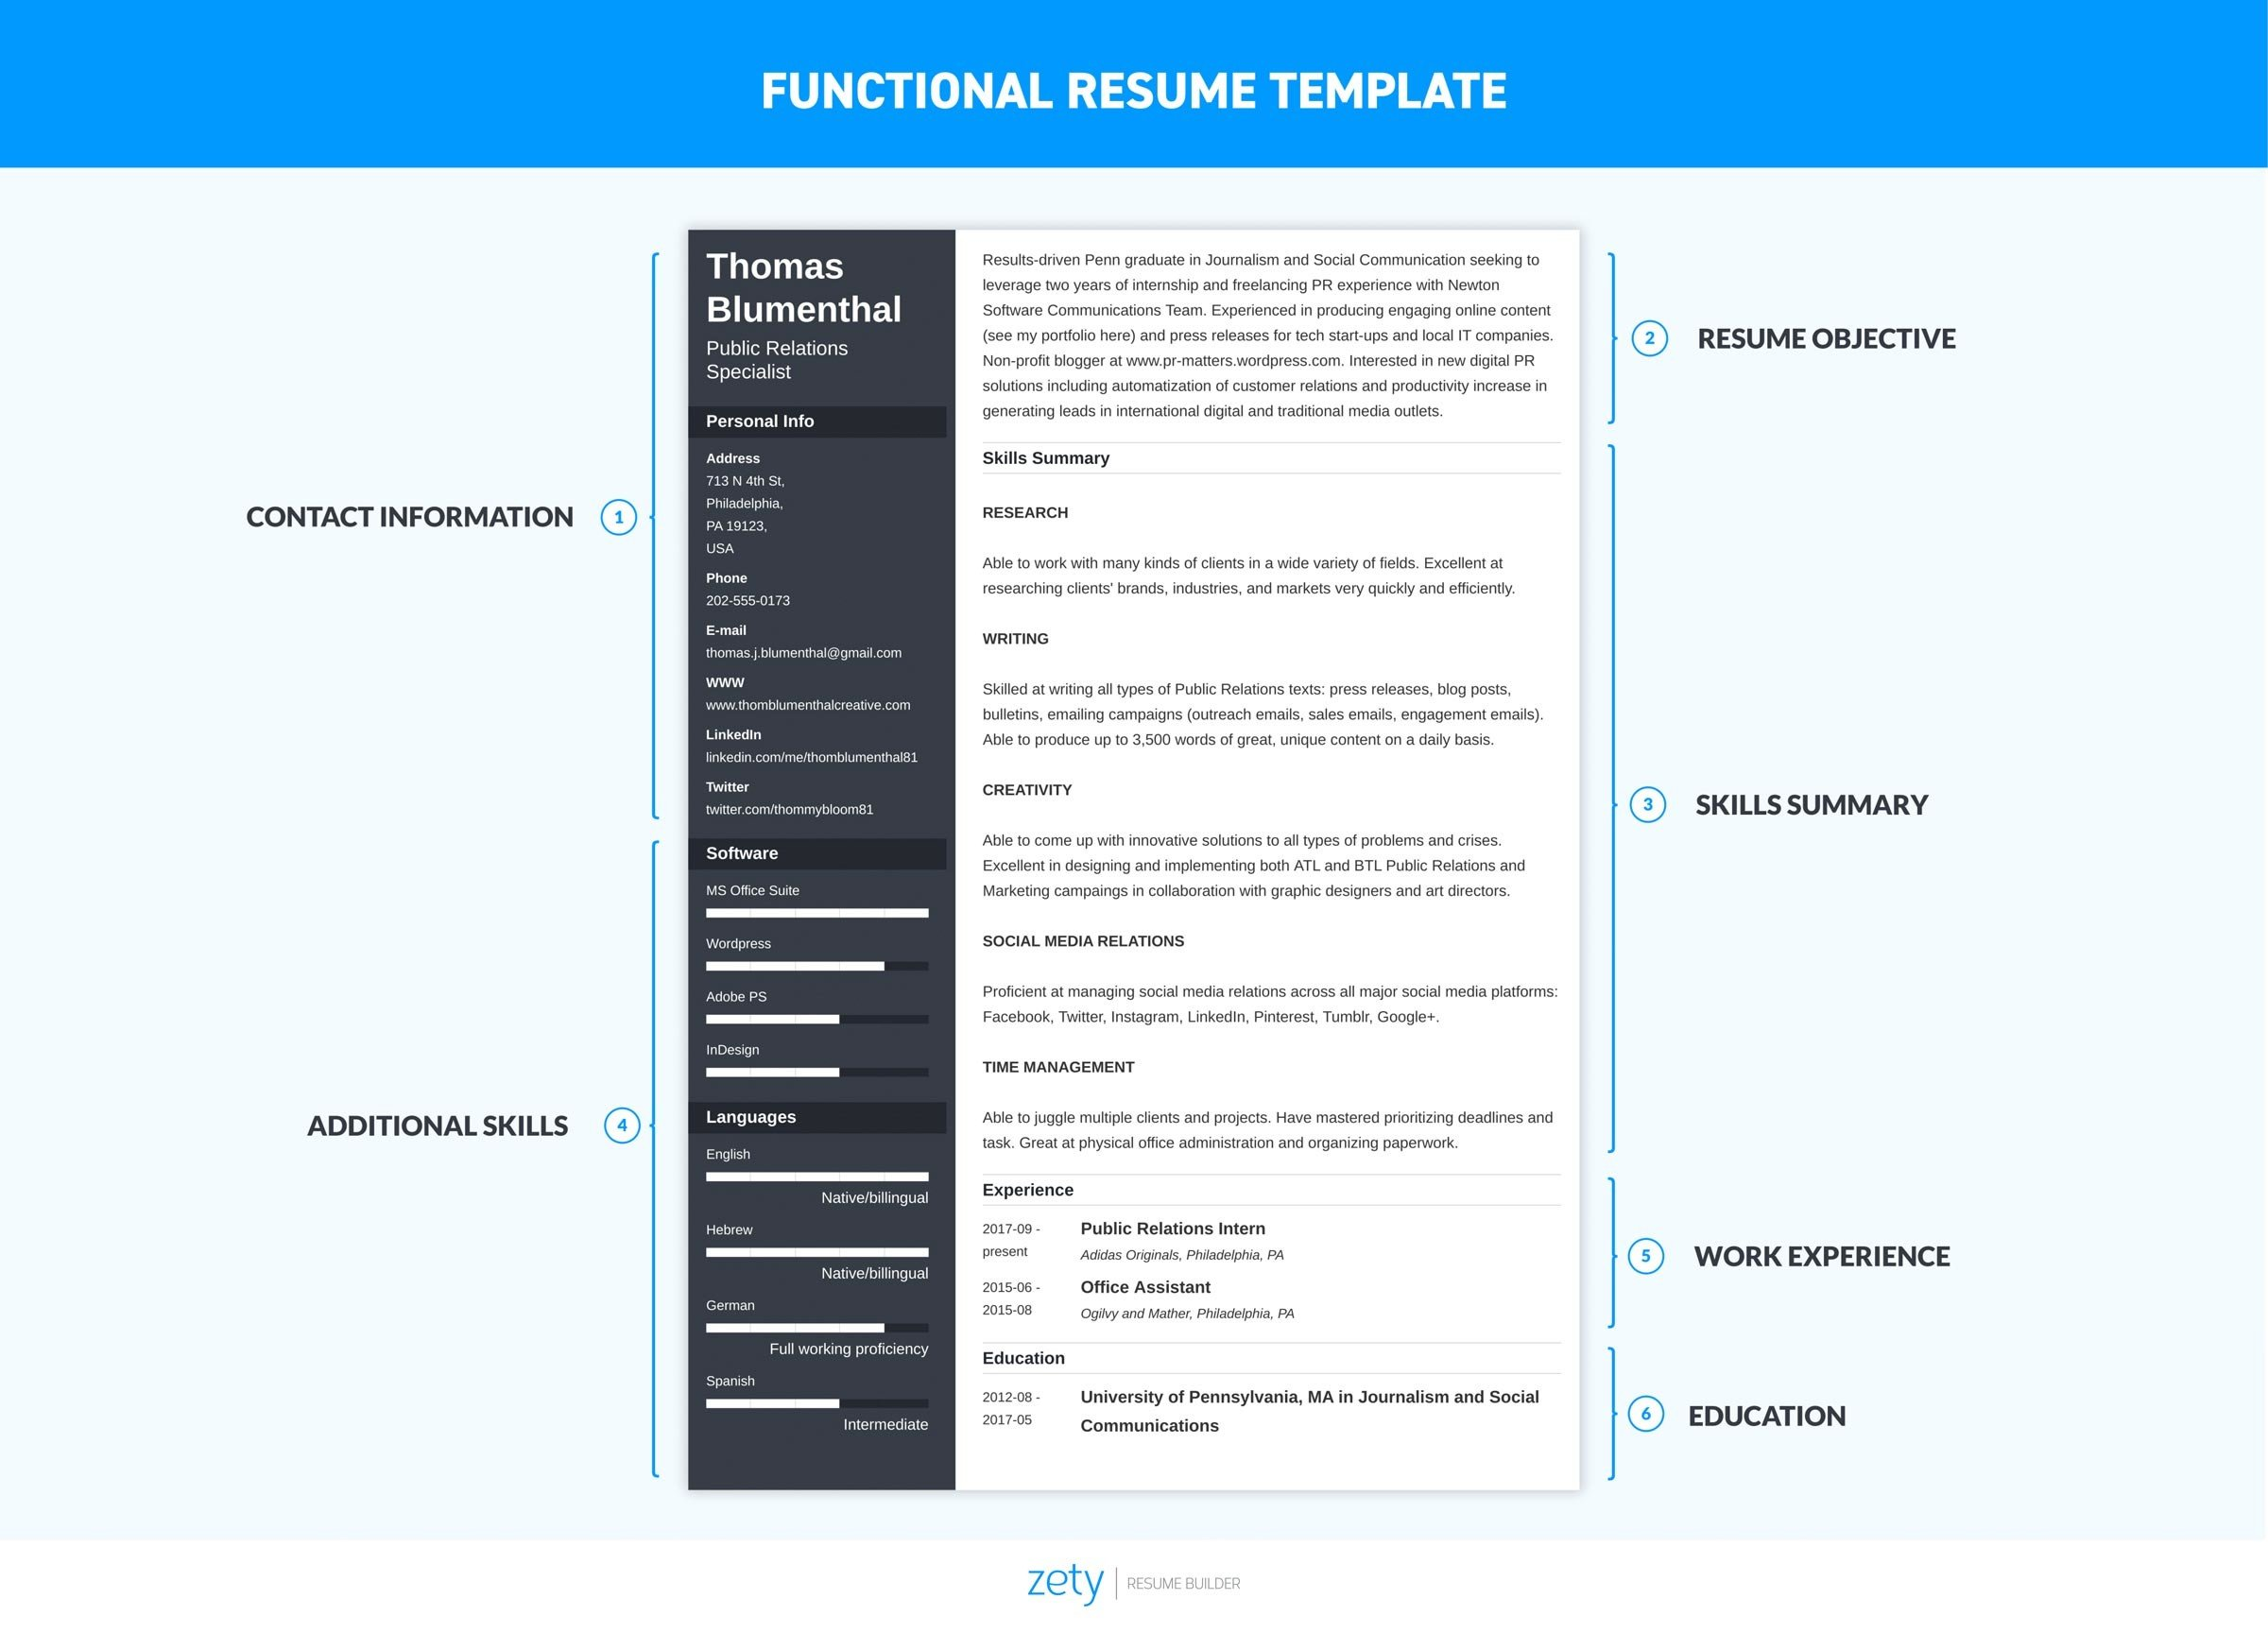 Core Functional Format Resume from cdn-images.zety.com